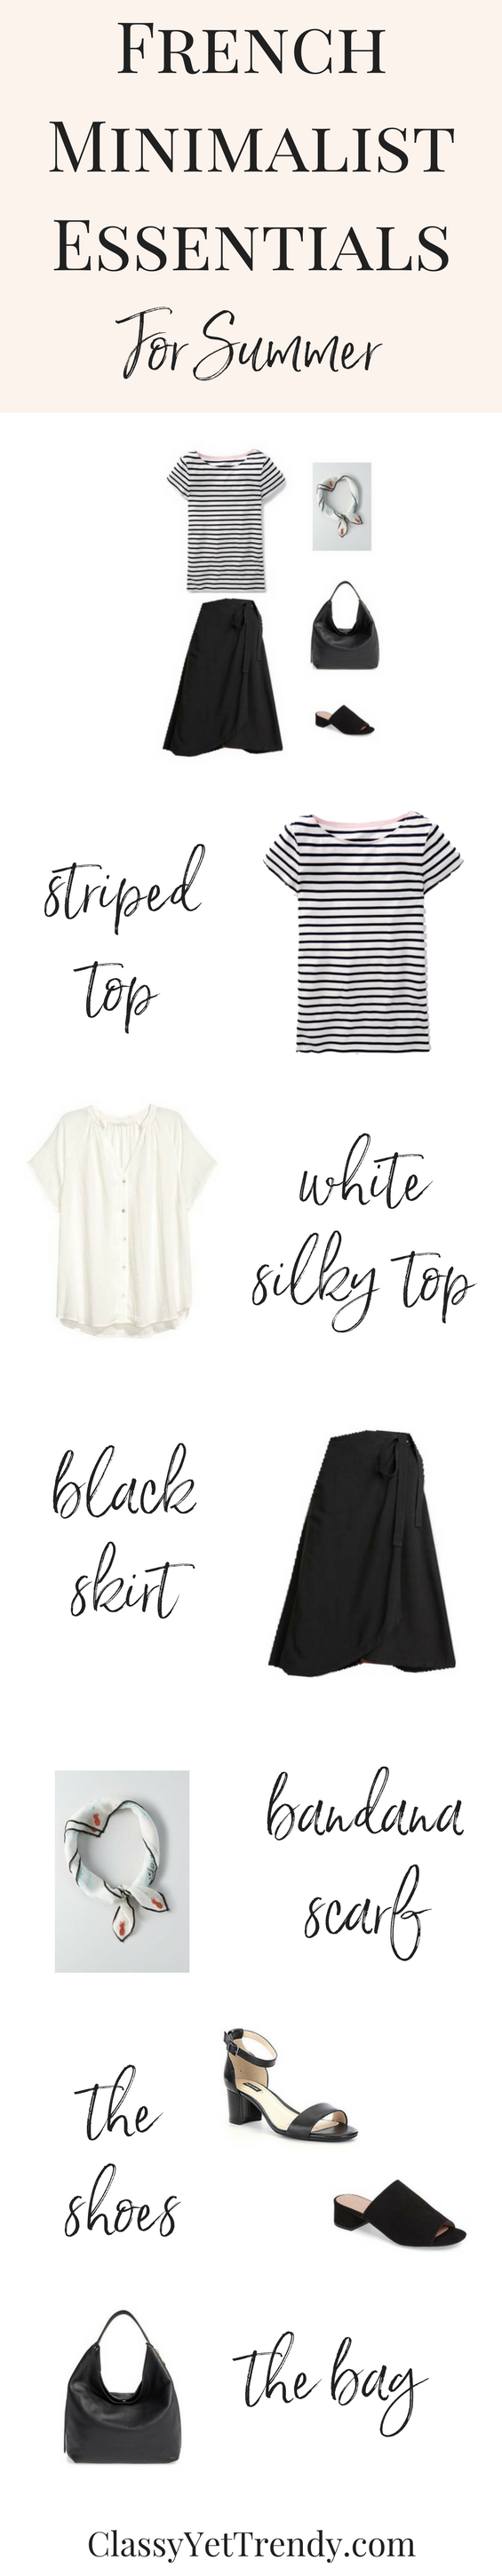 French Minimalist Essentials Clothes For Summer